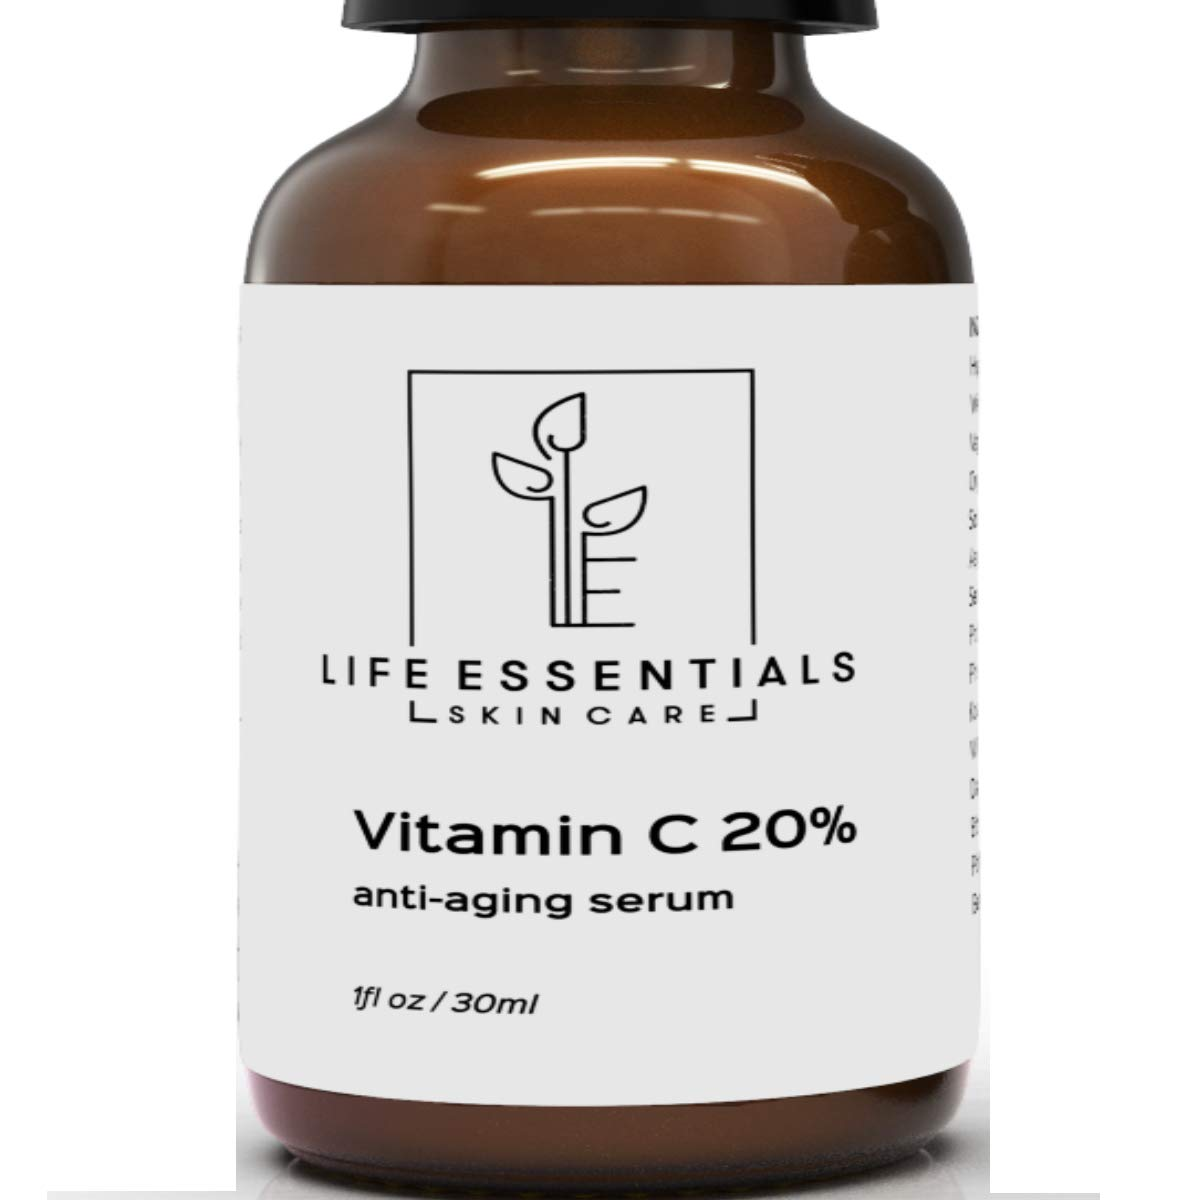 8f5faaf6edd Amazon.com  Vitamin C Serum for Face 20% - Hyaluronic Acid - Anti Wrinkle - Anti  Aging Serum - Fades Dark Spots - Repairs Skin - Organic Ingredients  Beauty